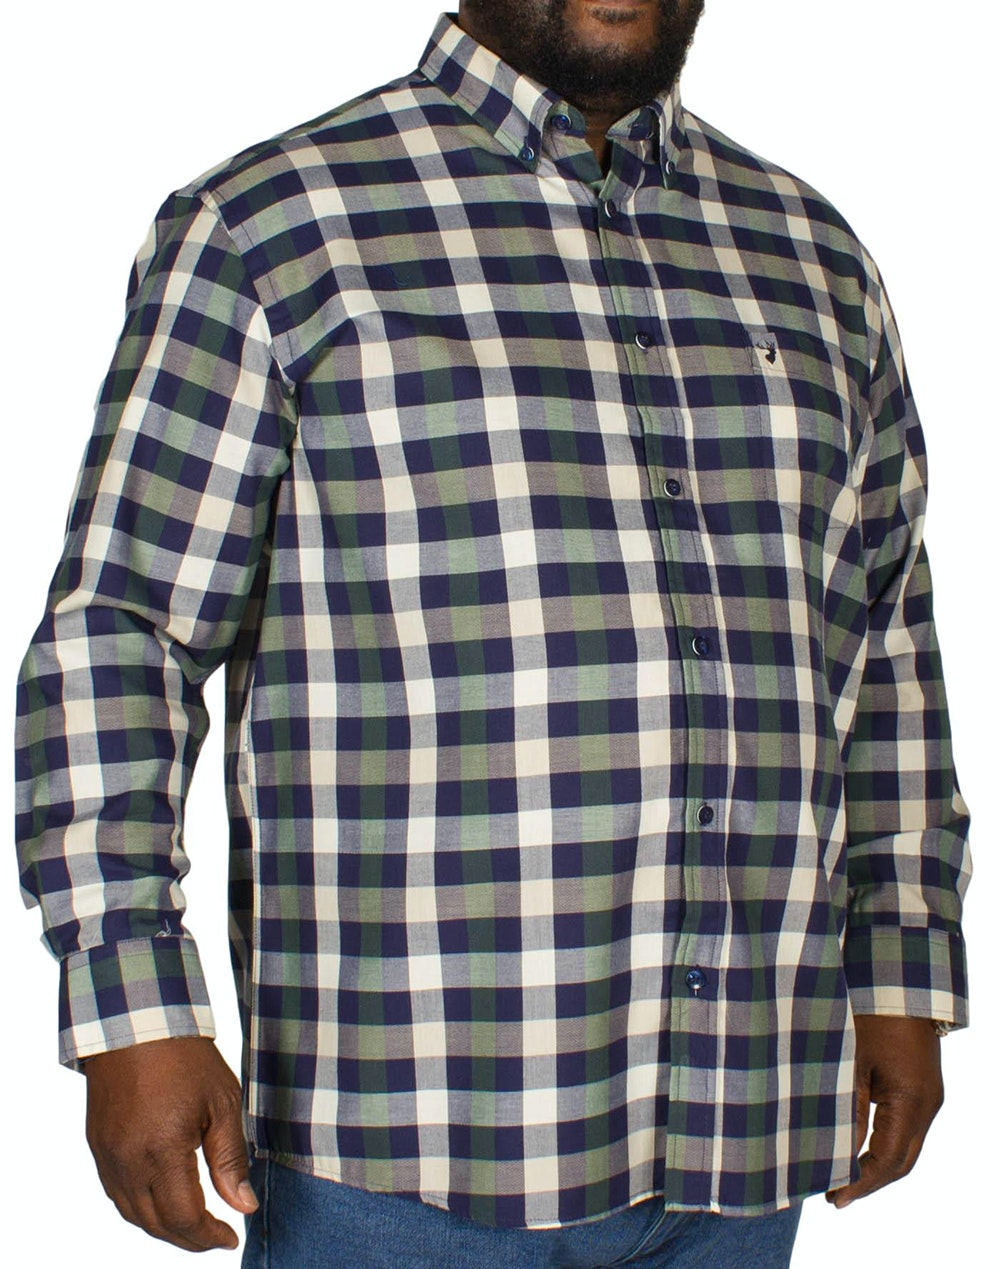 KAM Long Sleeve Check Shirt Dark Ivy/Blue